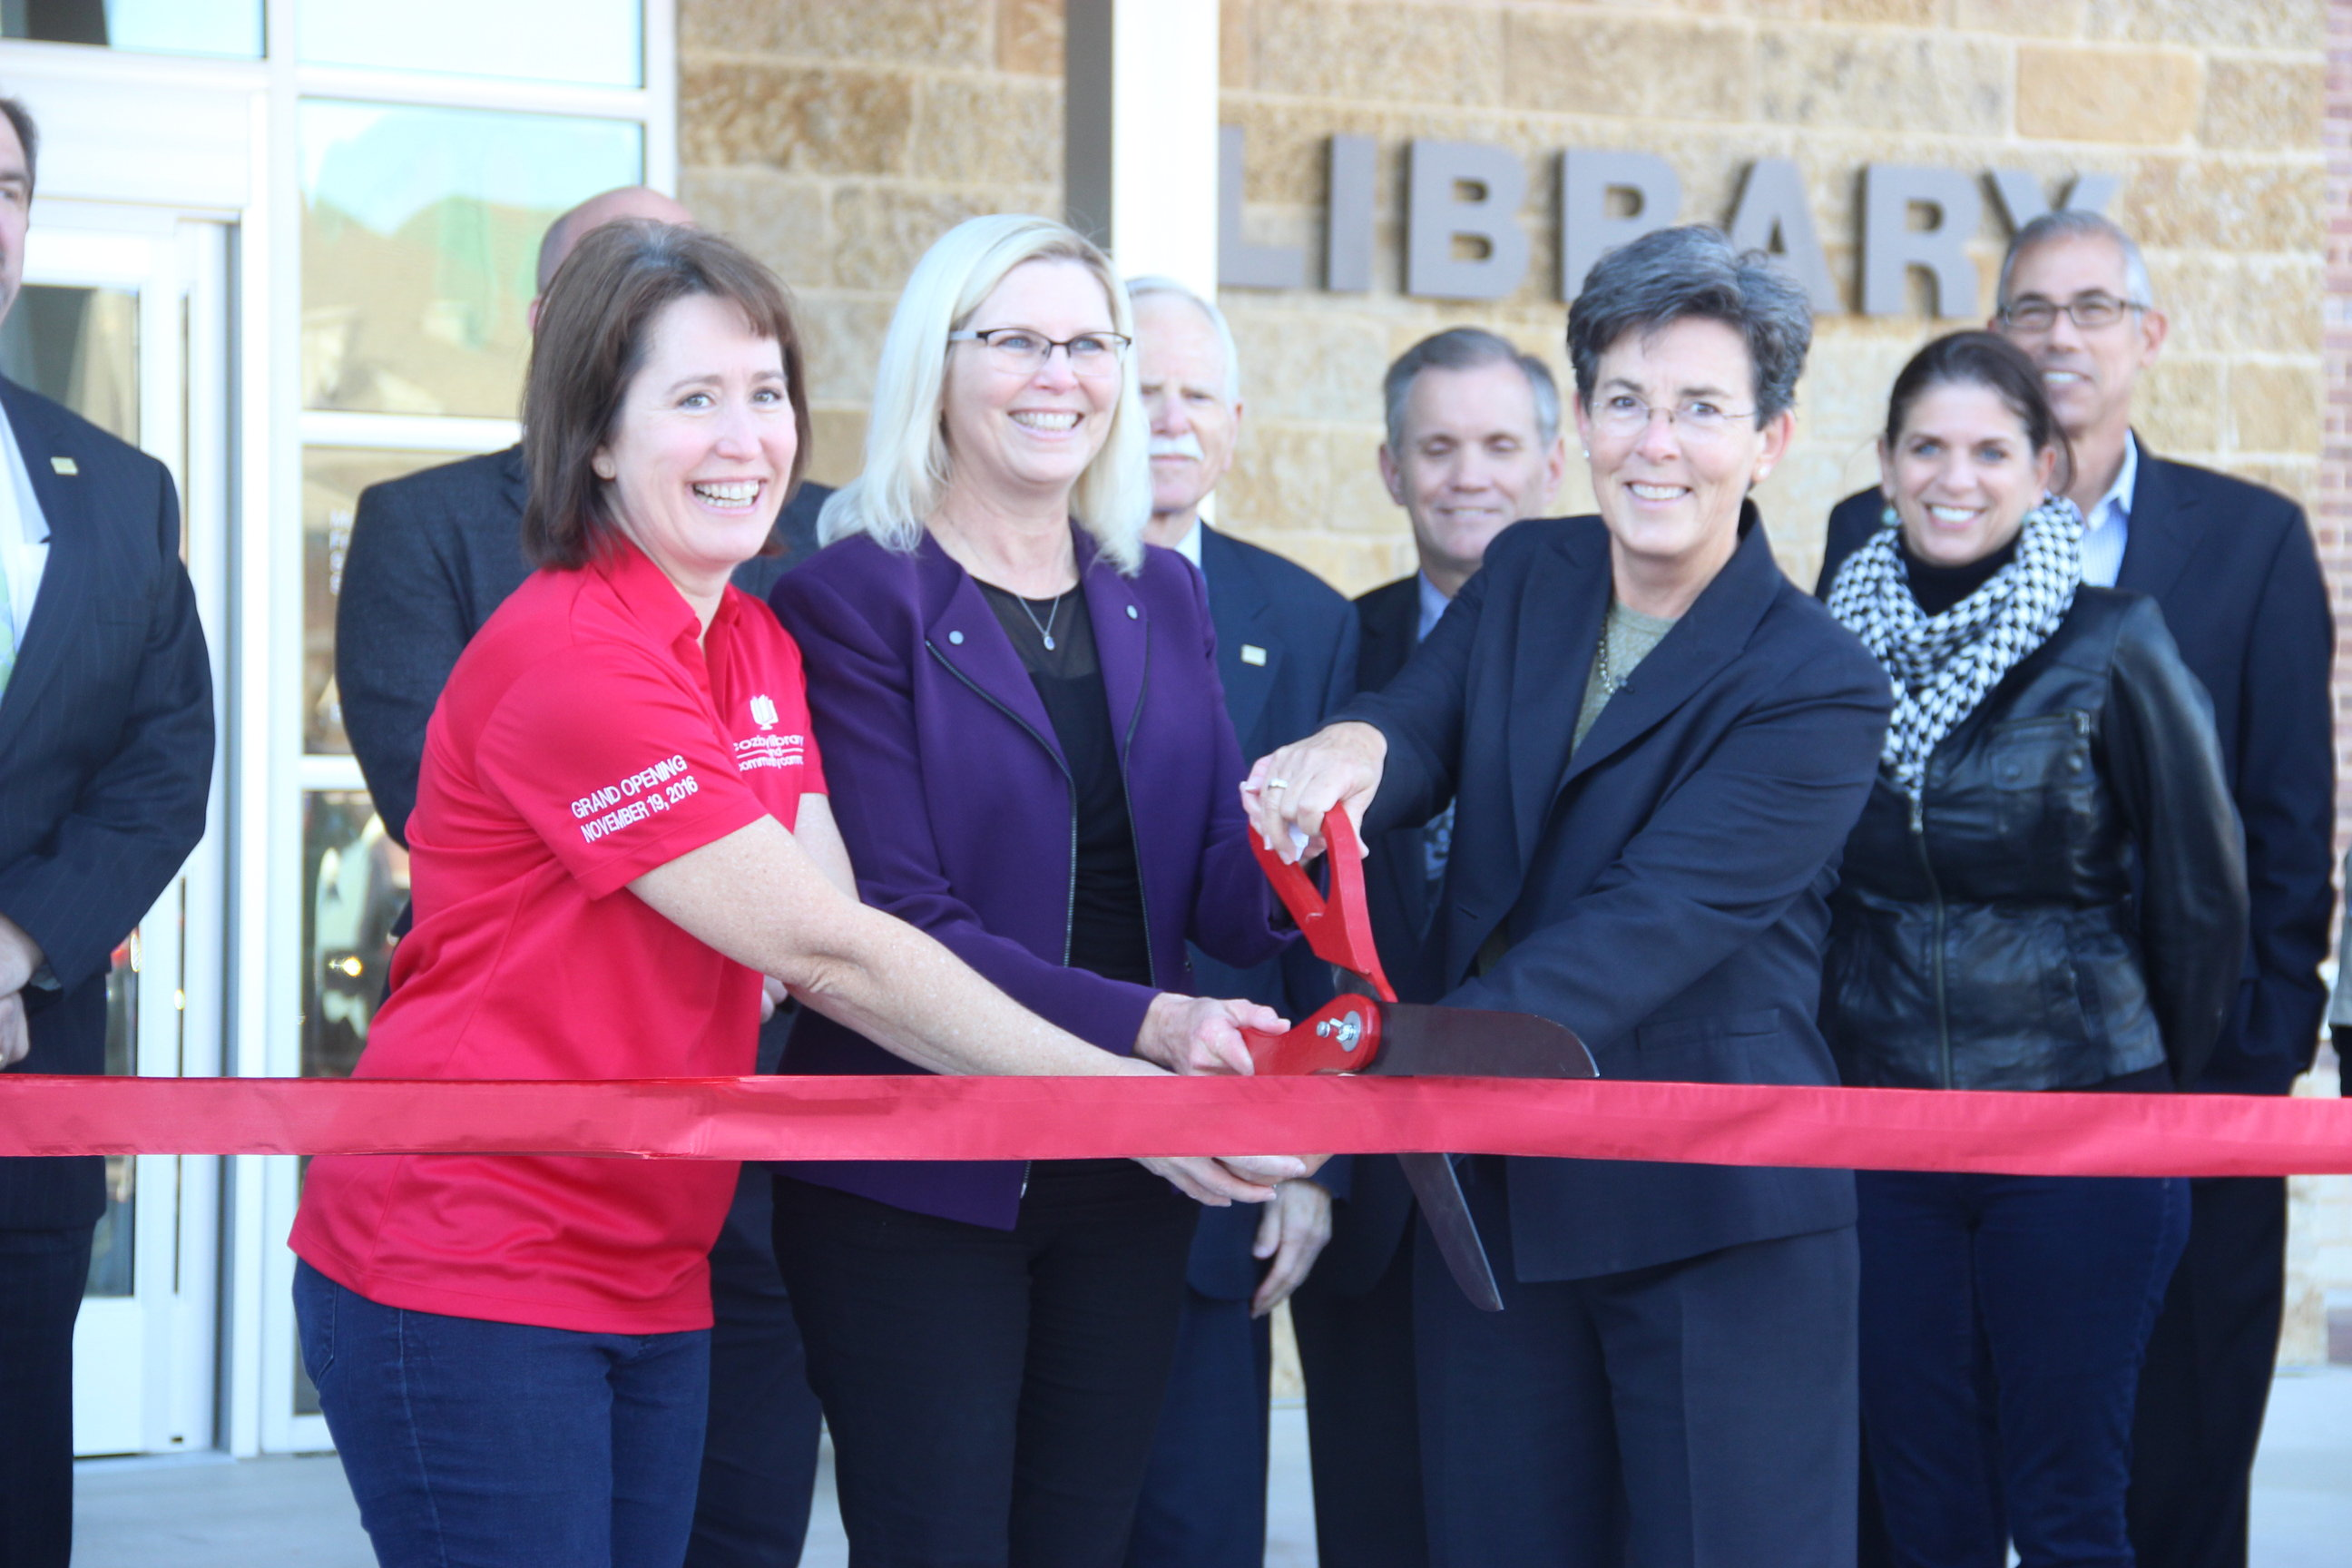 The ribbon is cut at the Grand Opening Celebration of the Cozby Library and Community Commons on Nov. 19. The event featured tours of the new building, as well as demonstrations and performances by the Fortissimo Five, James Wand and Liberation Coffee.